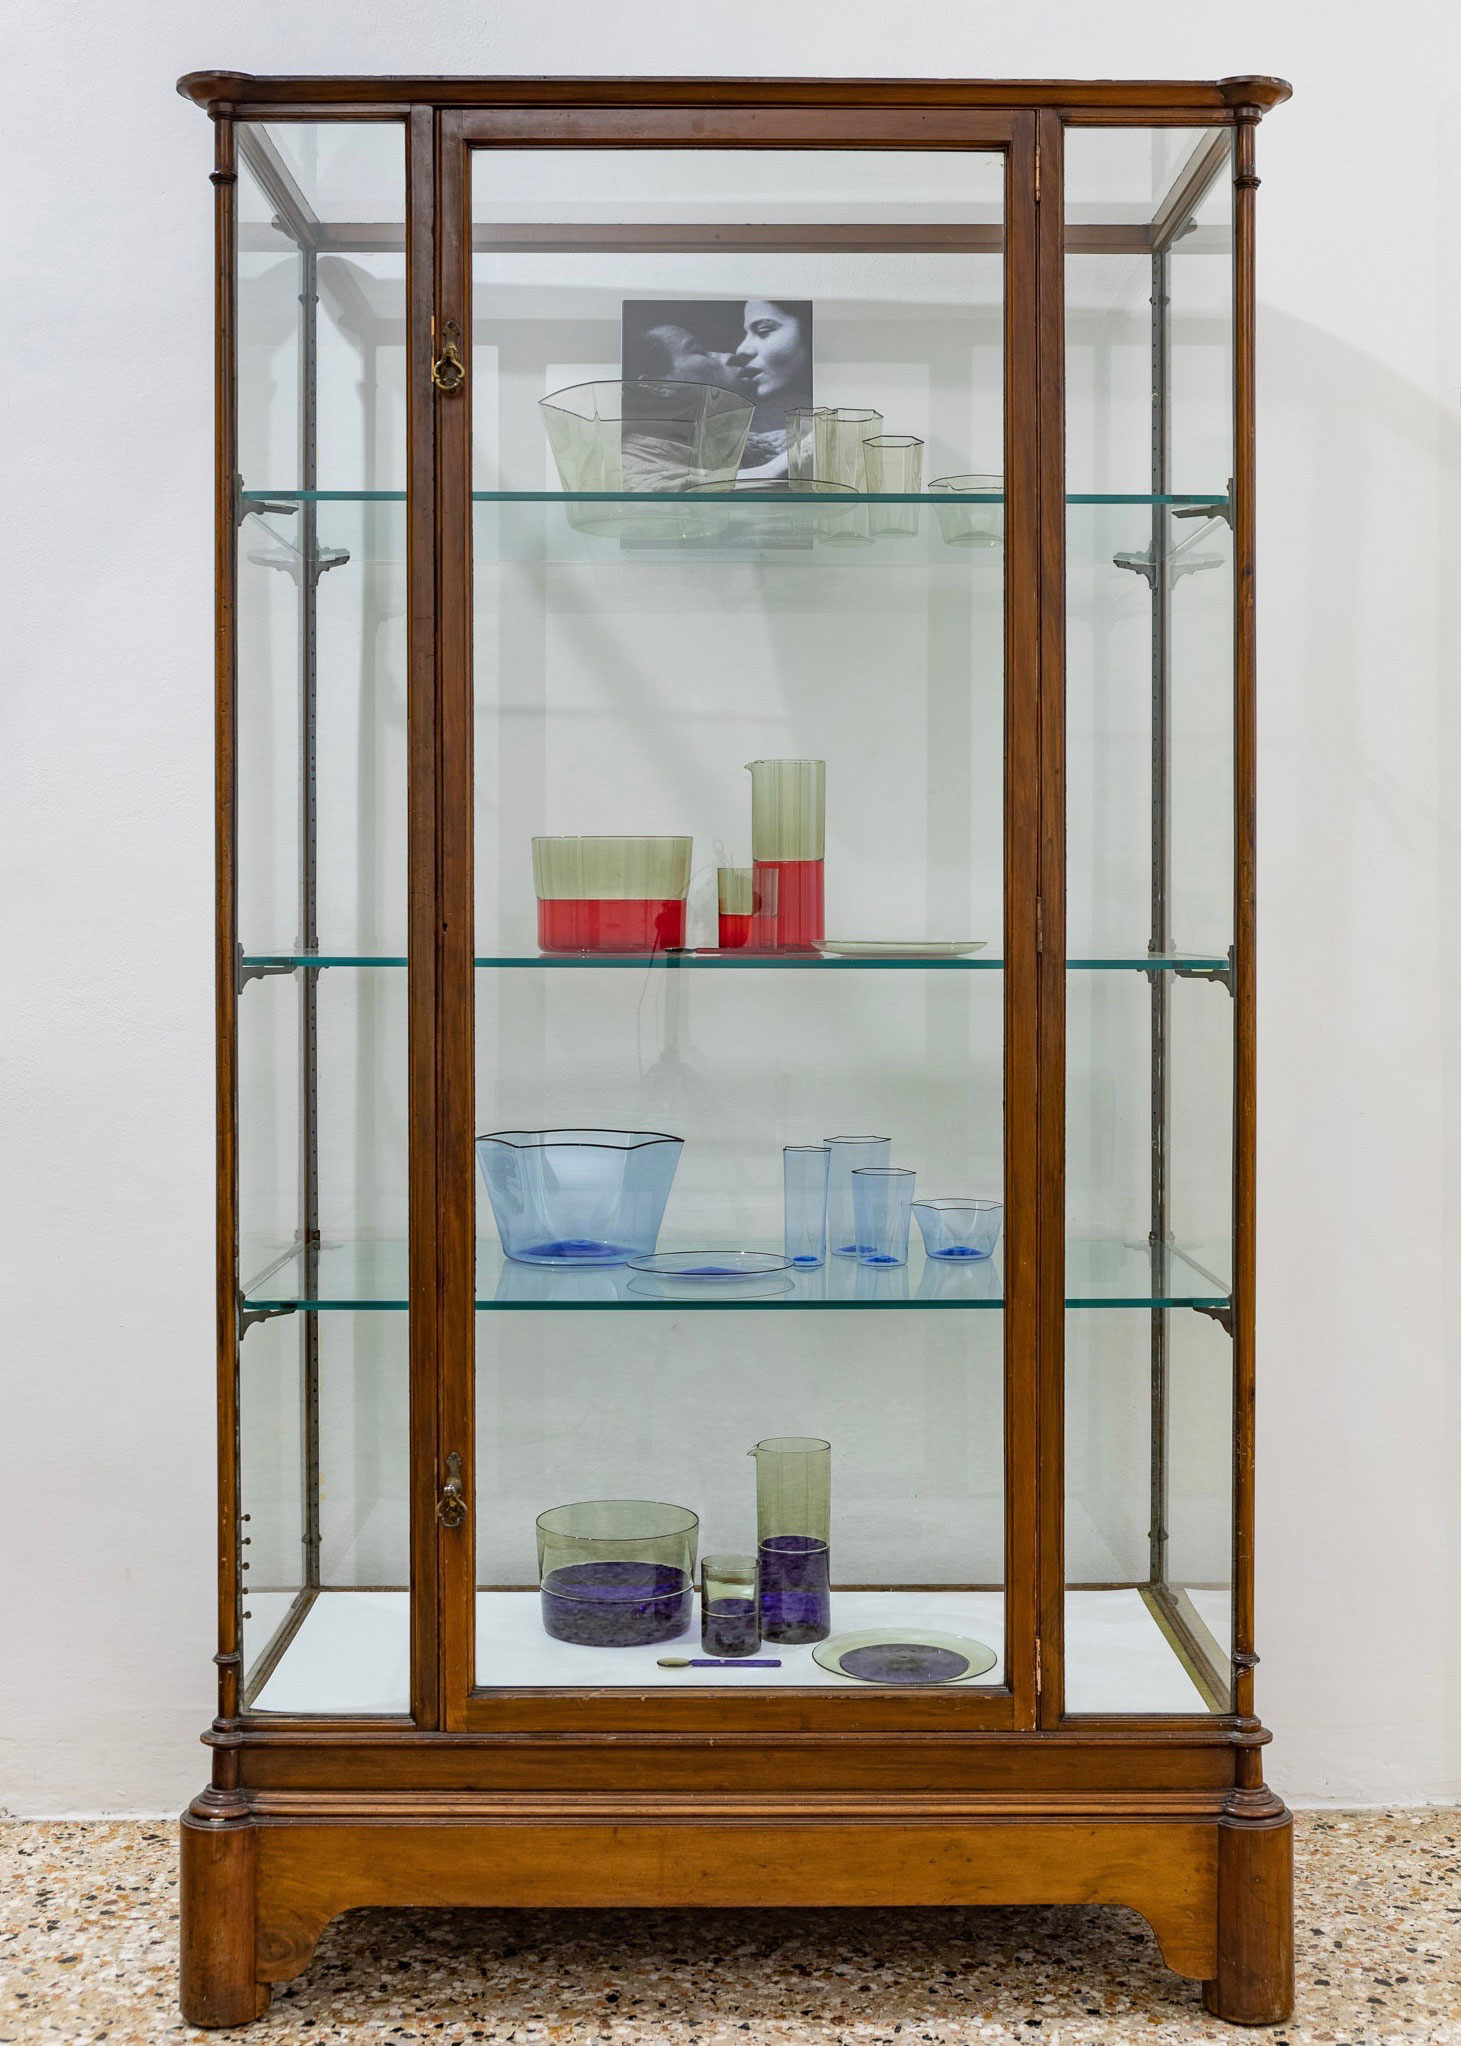 YALI-STUDIO-DISPLAY-GLASS.jpg